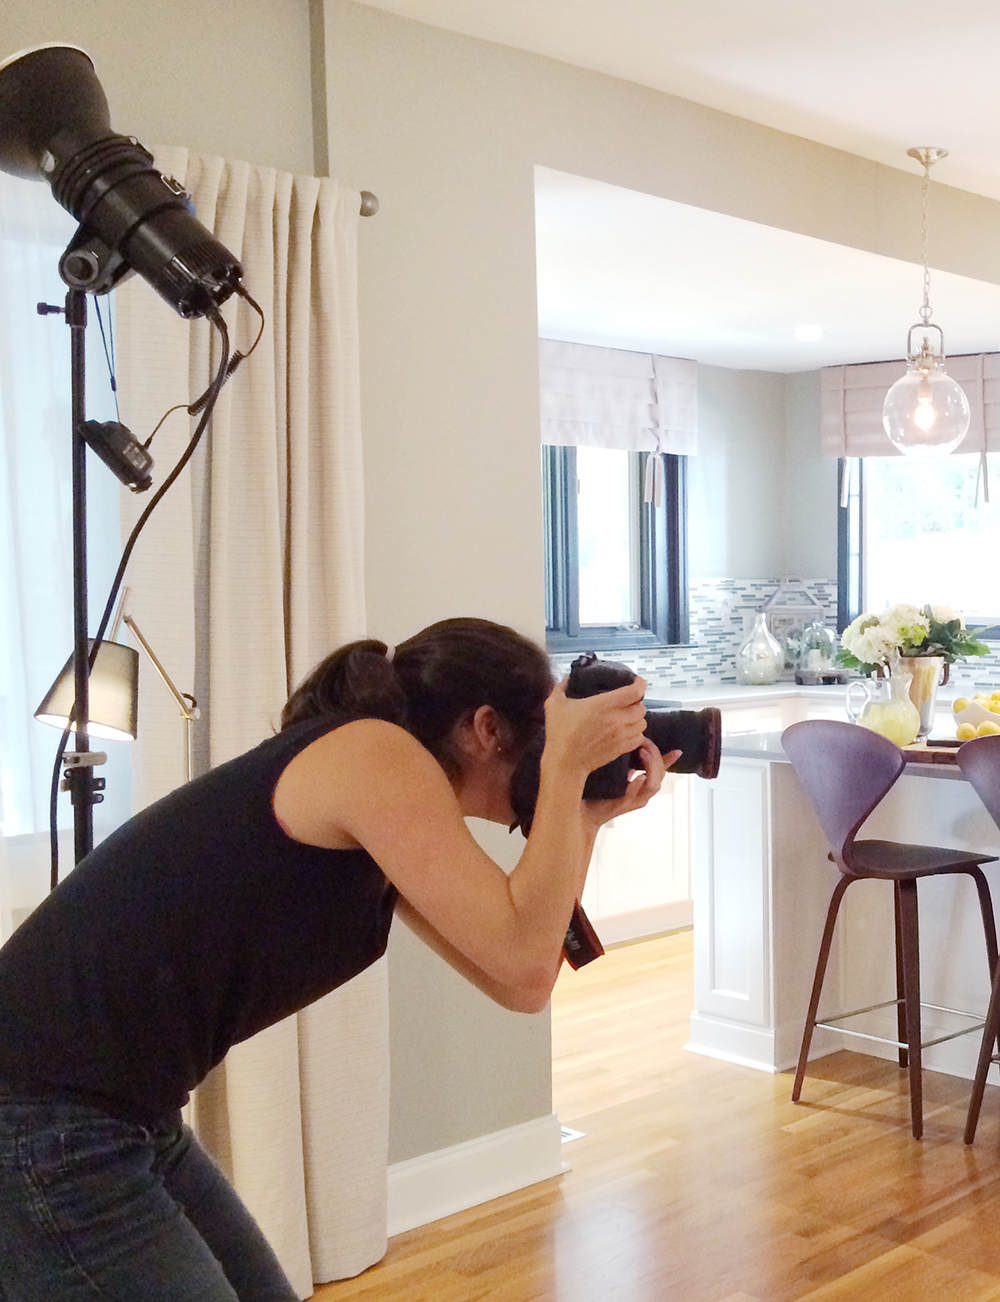 Shooting the very first of 26 houses